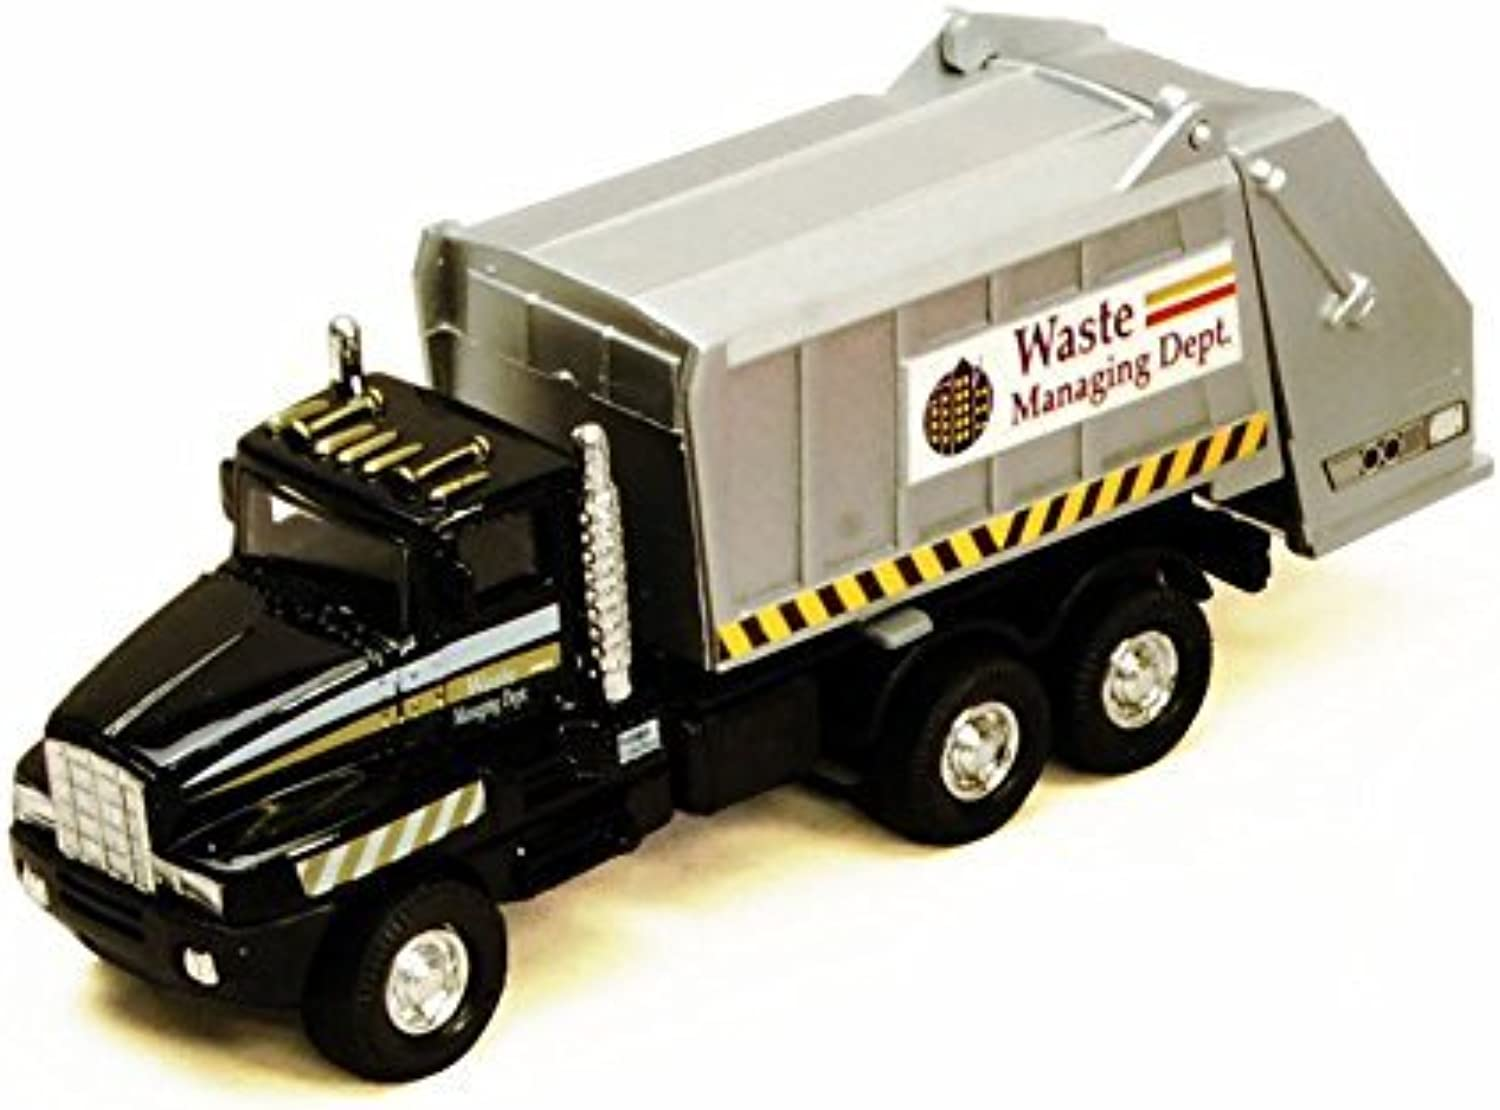 Garbage Truck, Black  Showcasts 9911DG  6 Inch Scale Diecast Model Replica by Showcasts